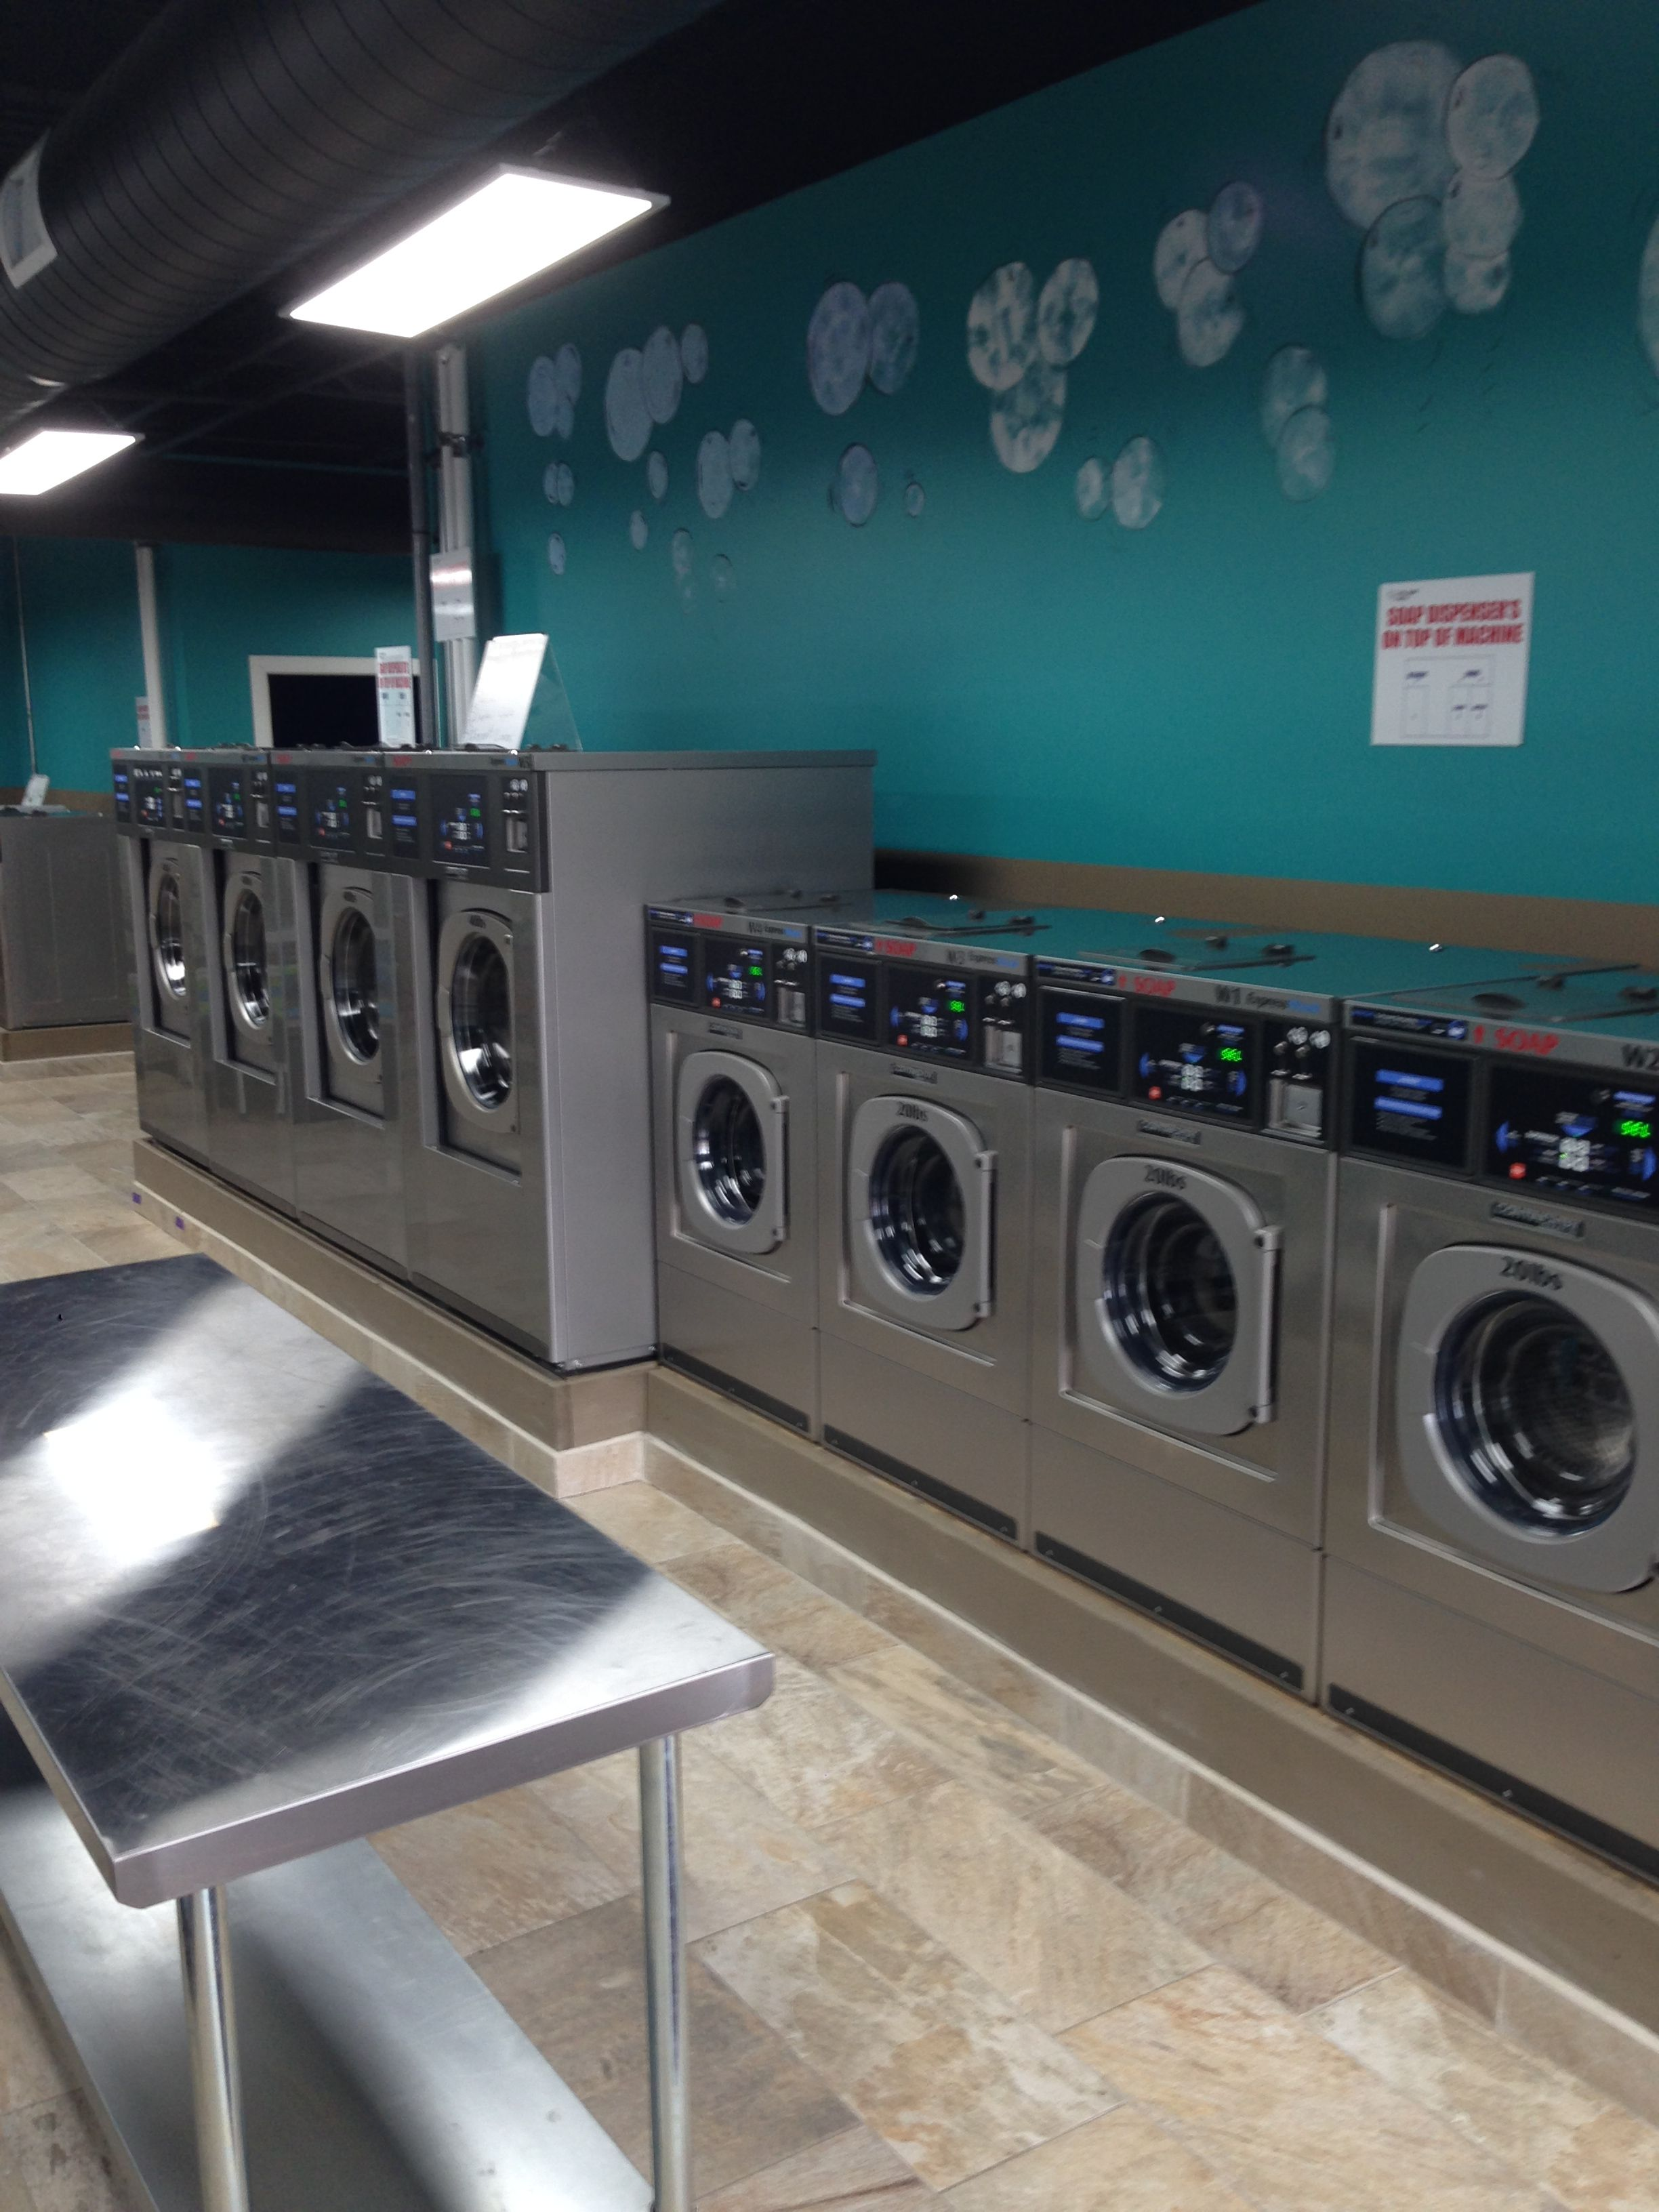 We specialize in Laundromat laundromats Coin operated washing